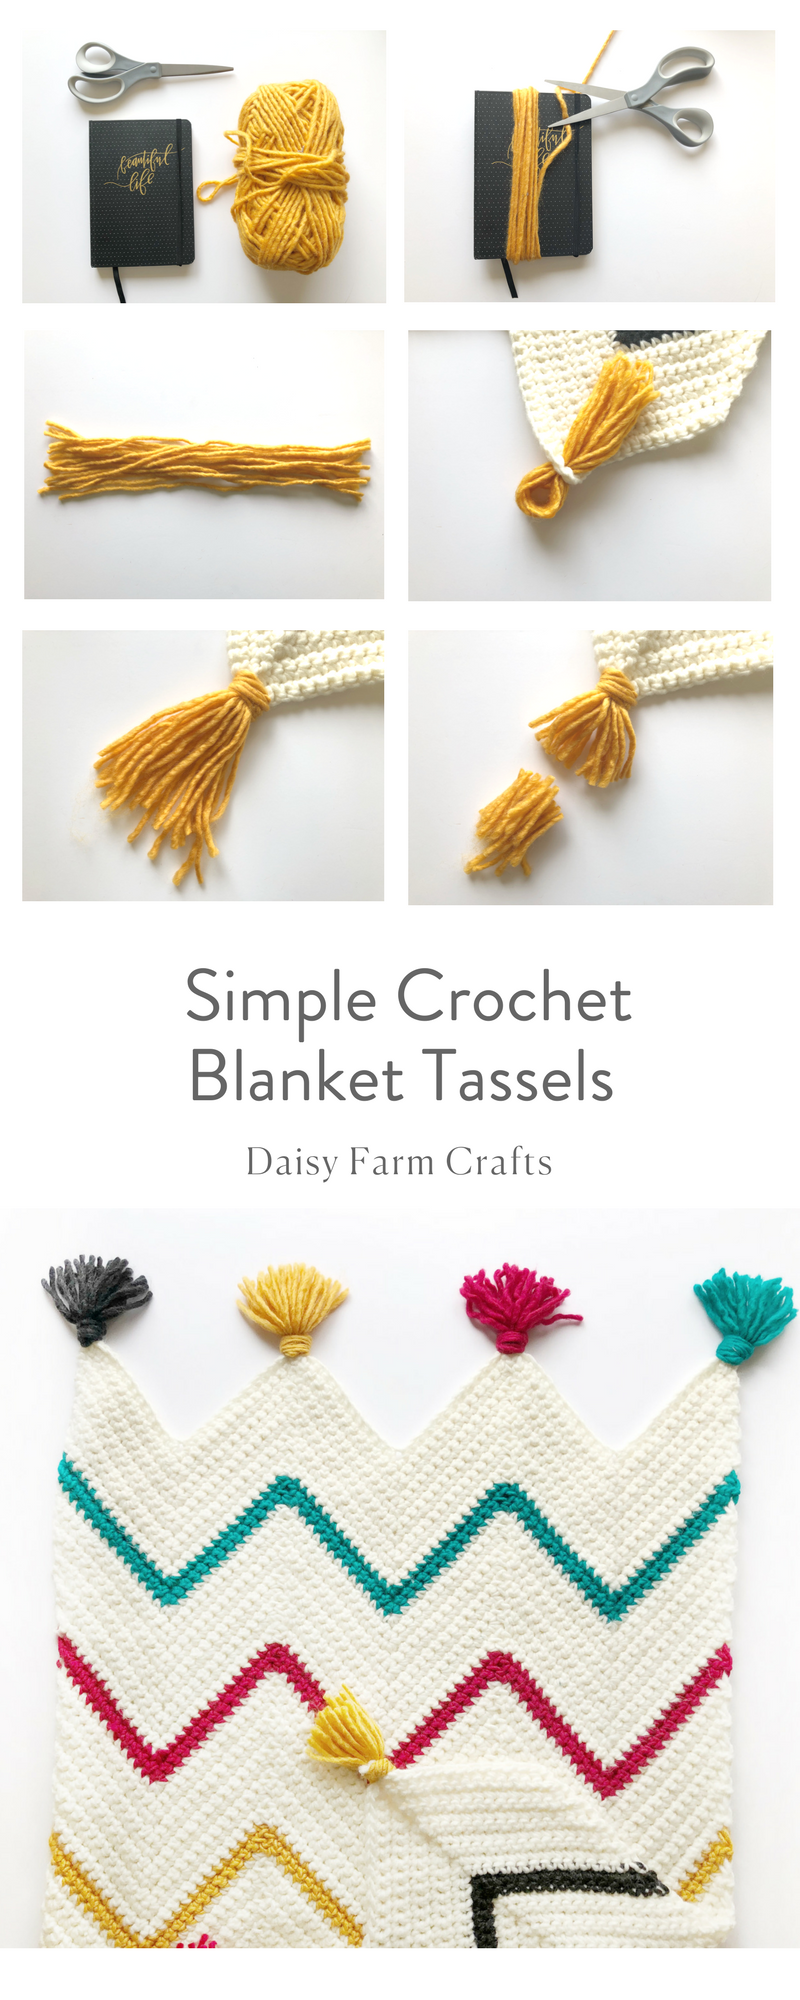 Free Pattern - Simple Crochet Blanket Tassels | Sewing | Pinterest ...